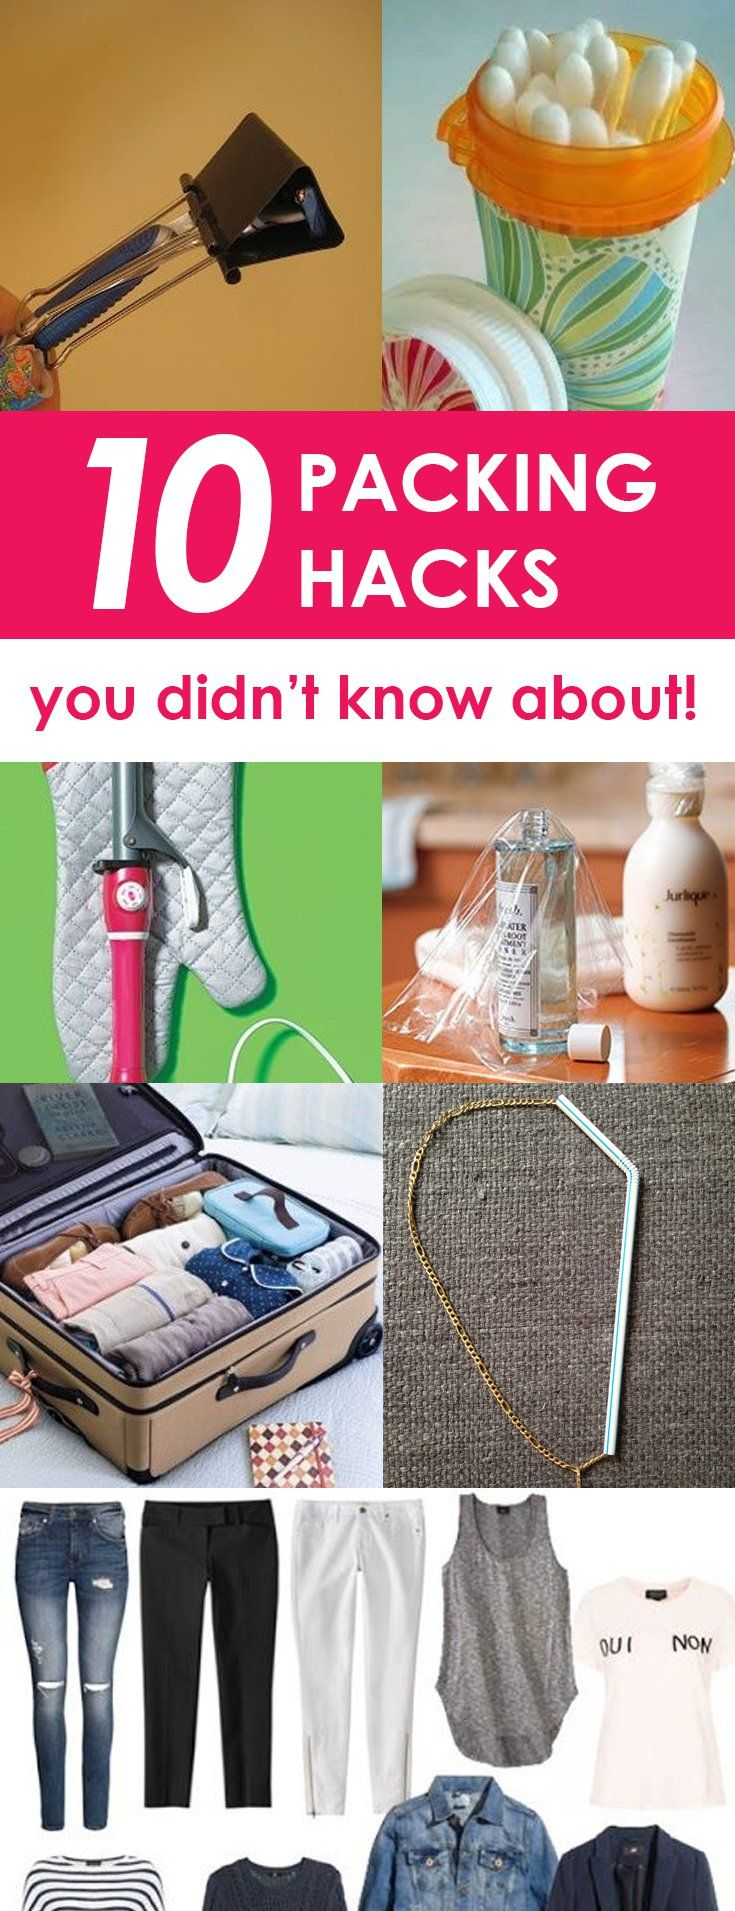 Now that winter break is here, it's time to travel! Packing hacks can really help make your travel plans a little less stressful. Whether you're traveling by car or plane, here are 10 packing hacks to help make your trip a bit easier! 1. Store Q-tips in an old pill bottle huffingtonpost.com Keep your Q-tips fresh by […]